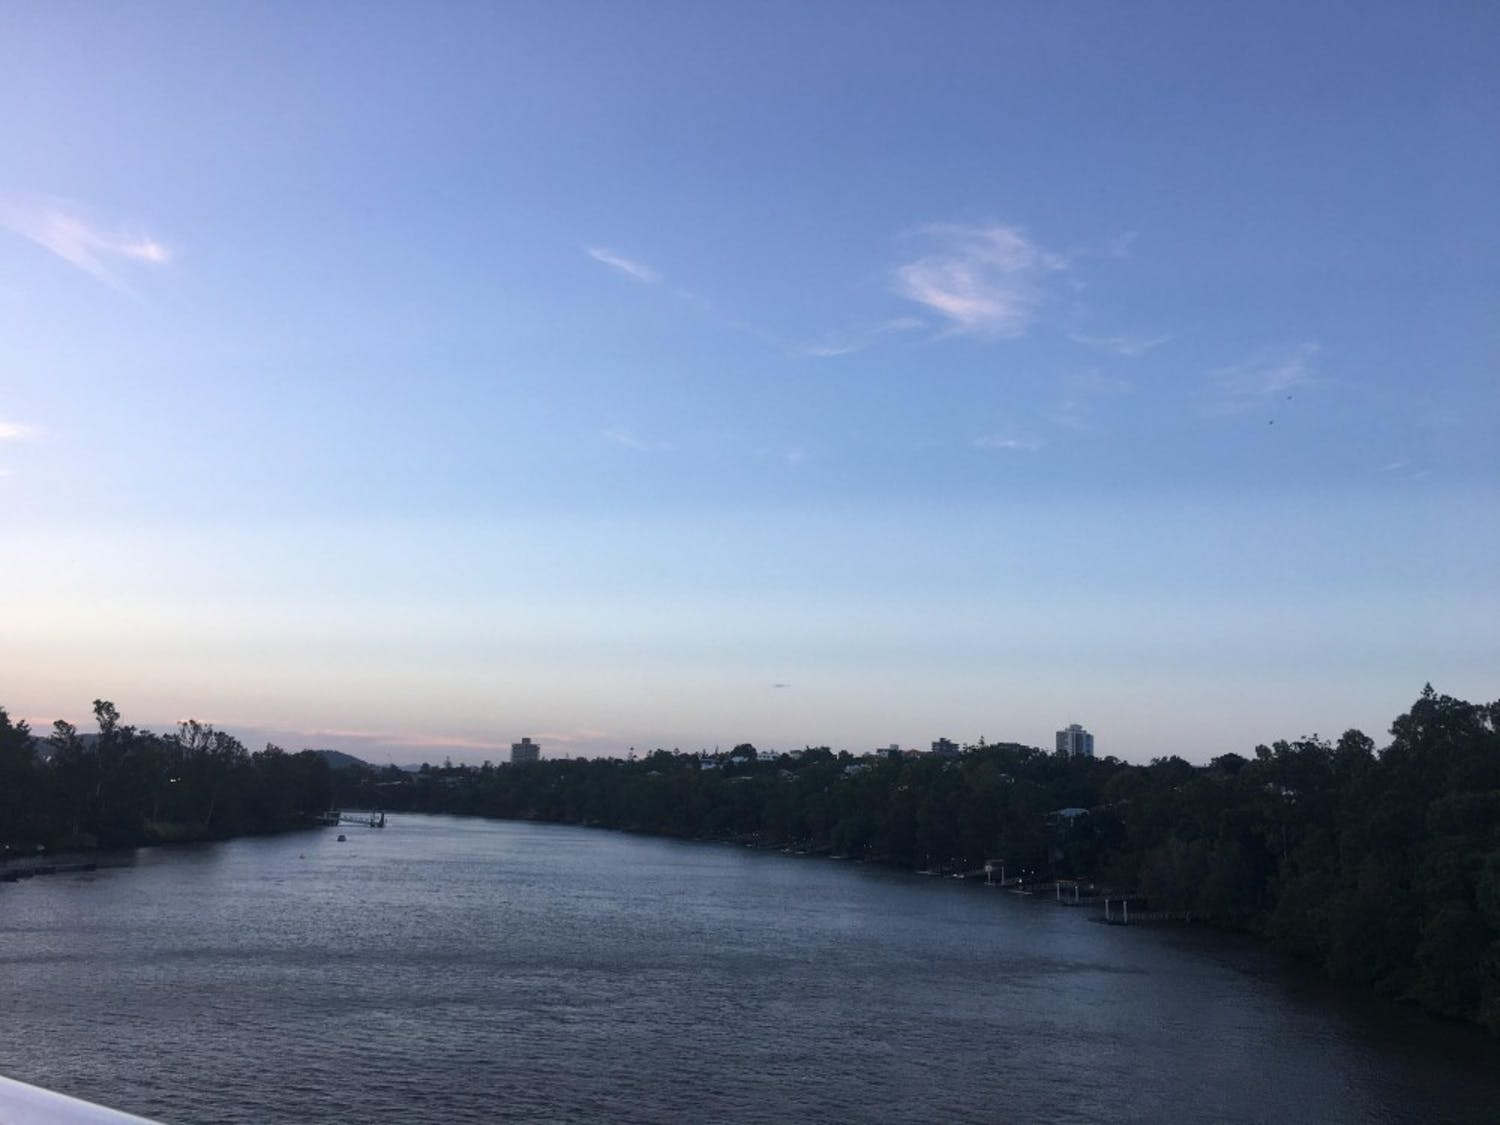 Brisbane is cool, it just takes some getting used to.